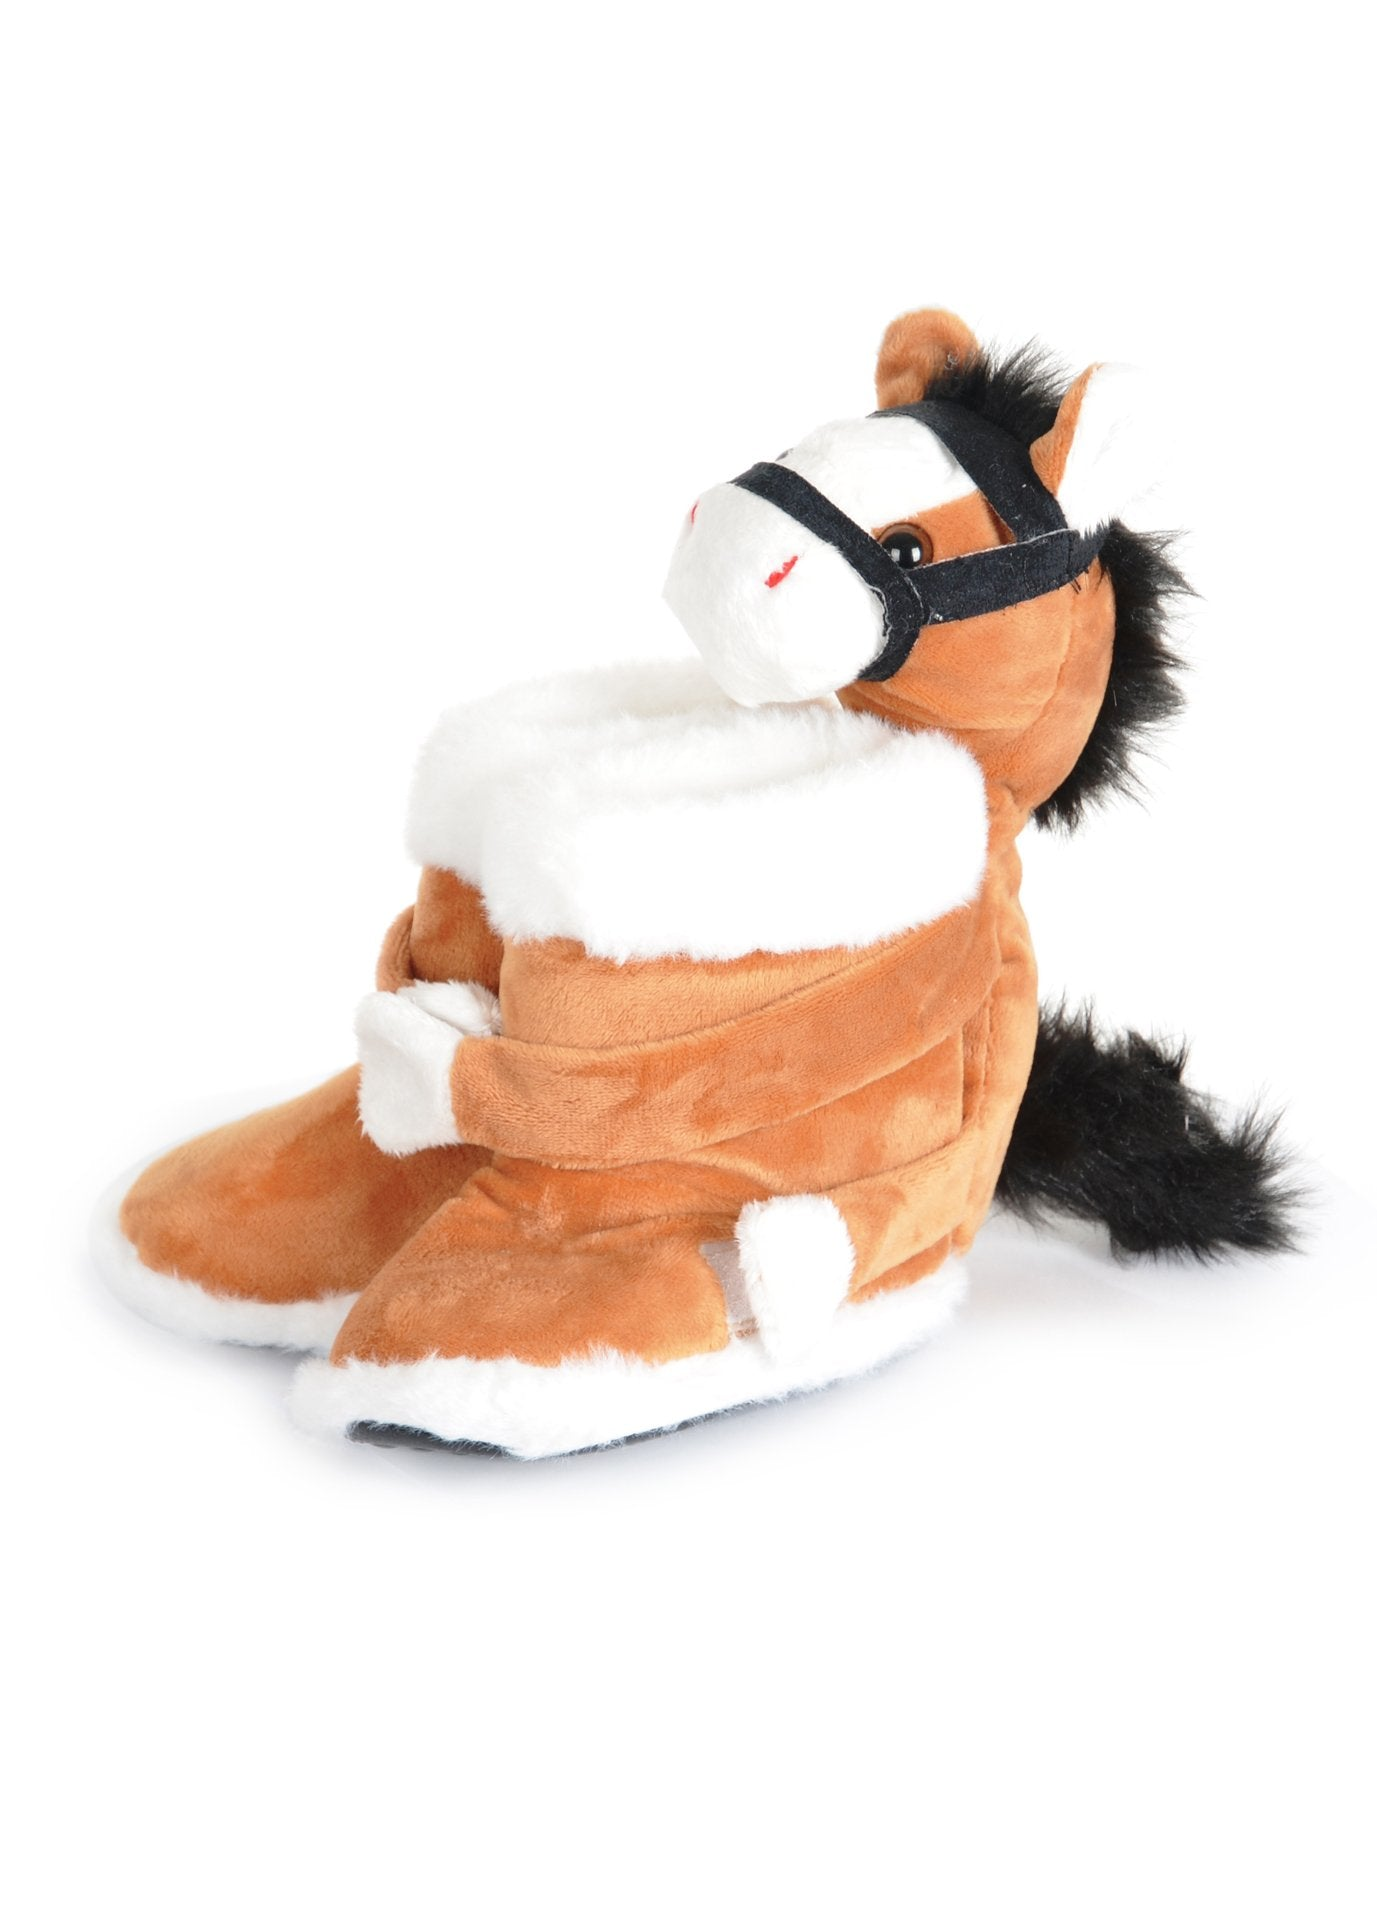 Unisex Kids Pony Slippers - Slippers